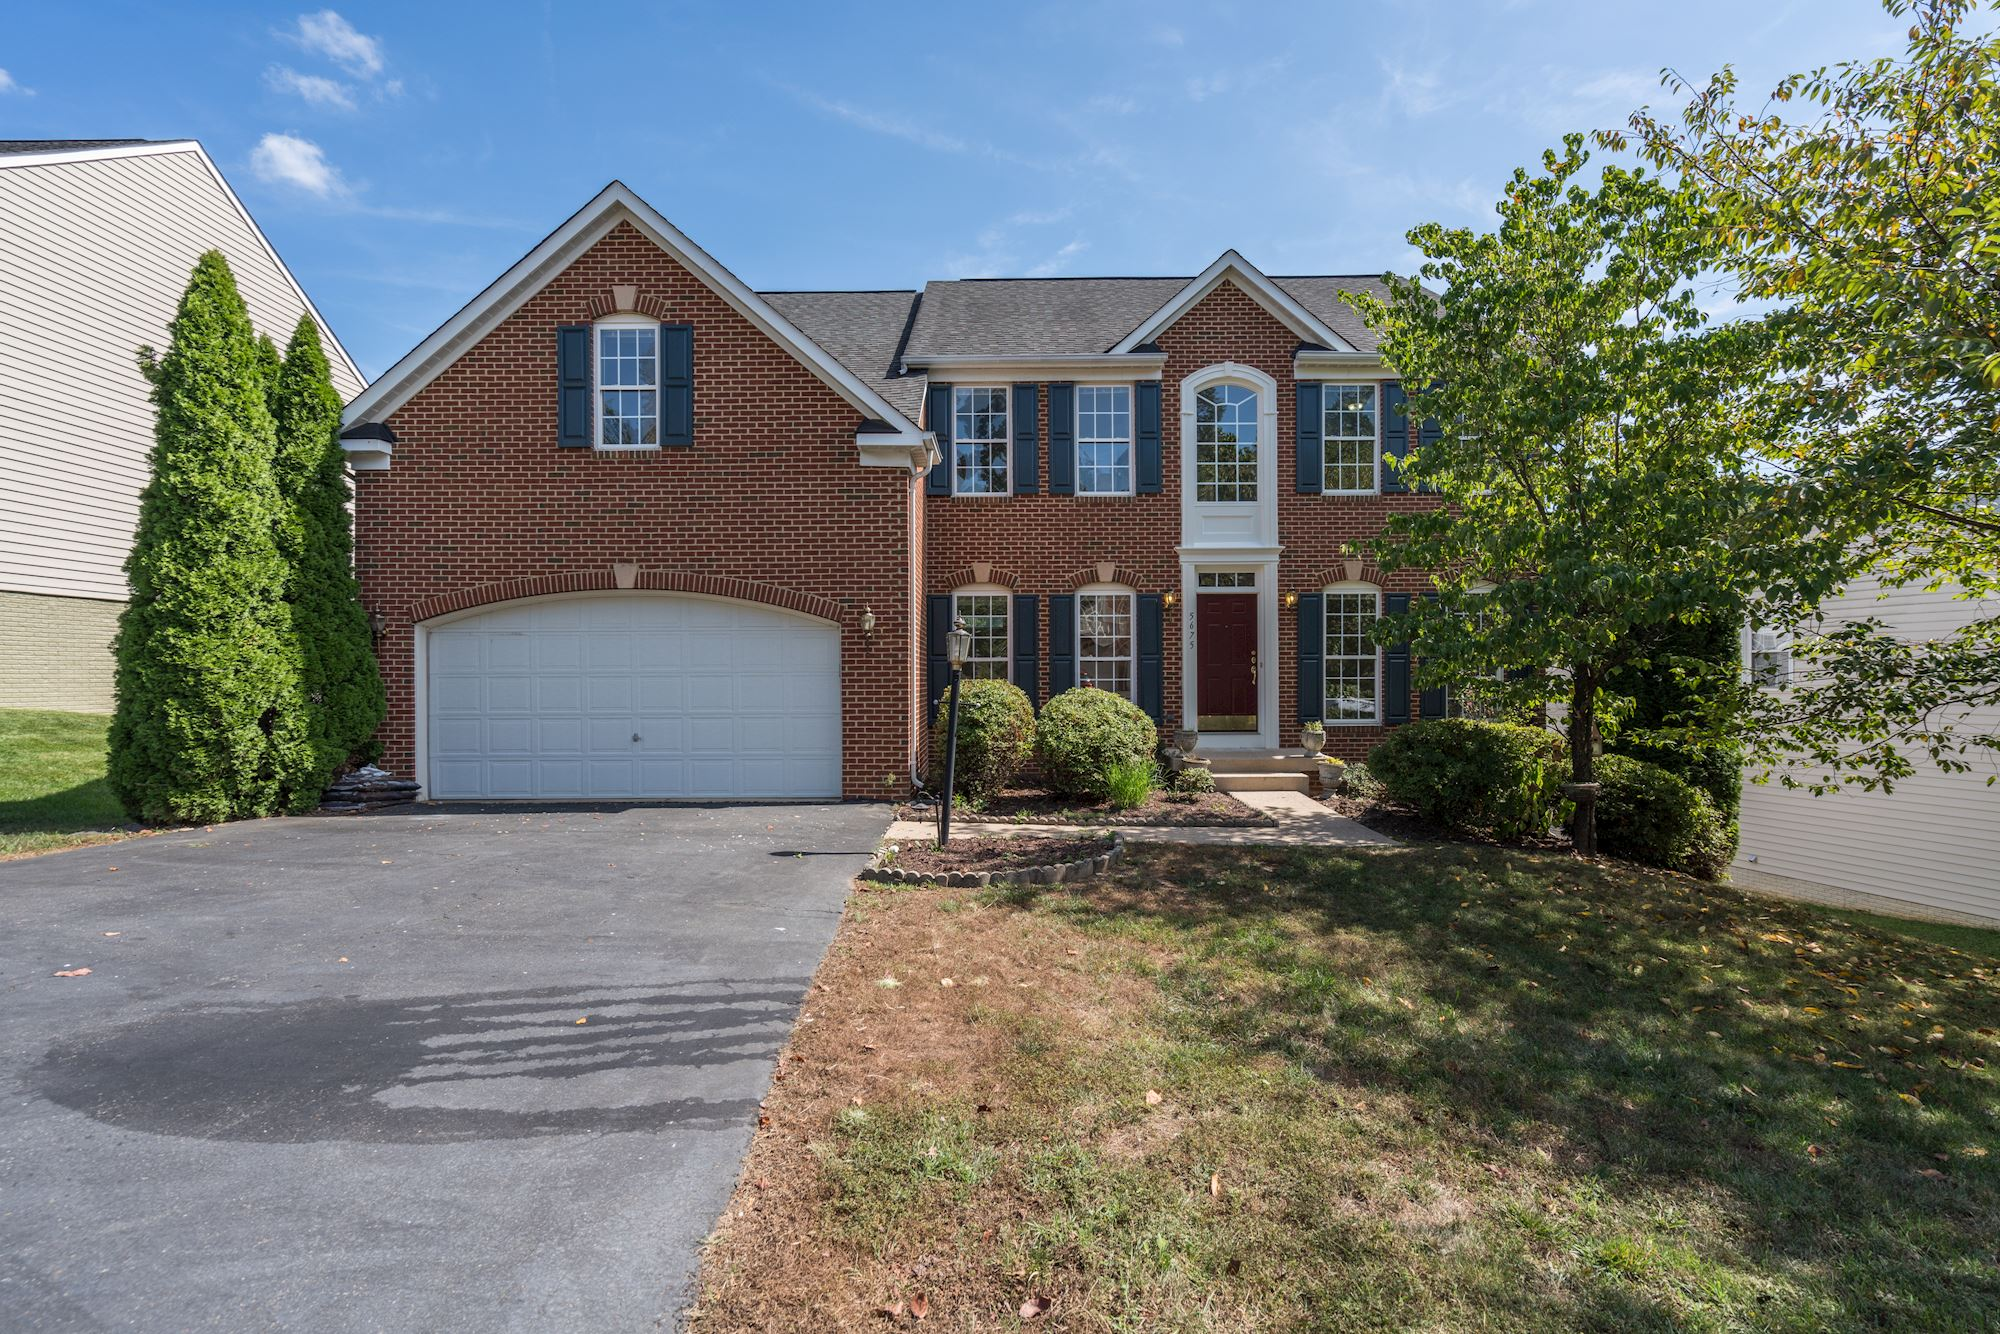 NEW LISTING: 6 BD beautiful TurnKey Colonial in Alexandria, VA